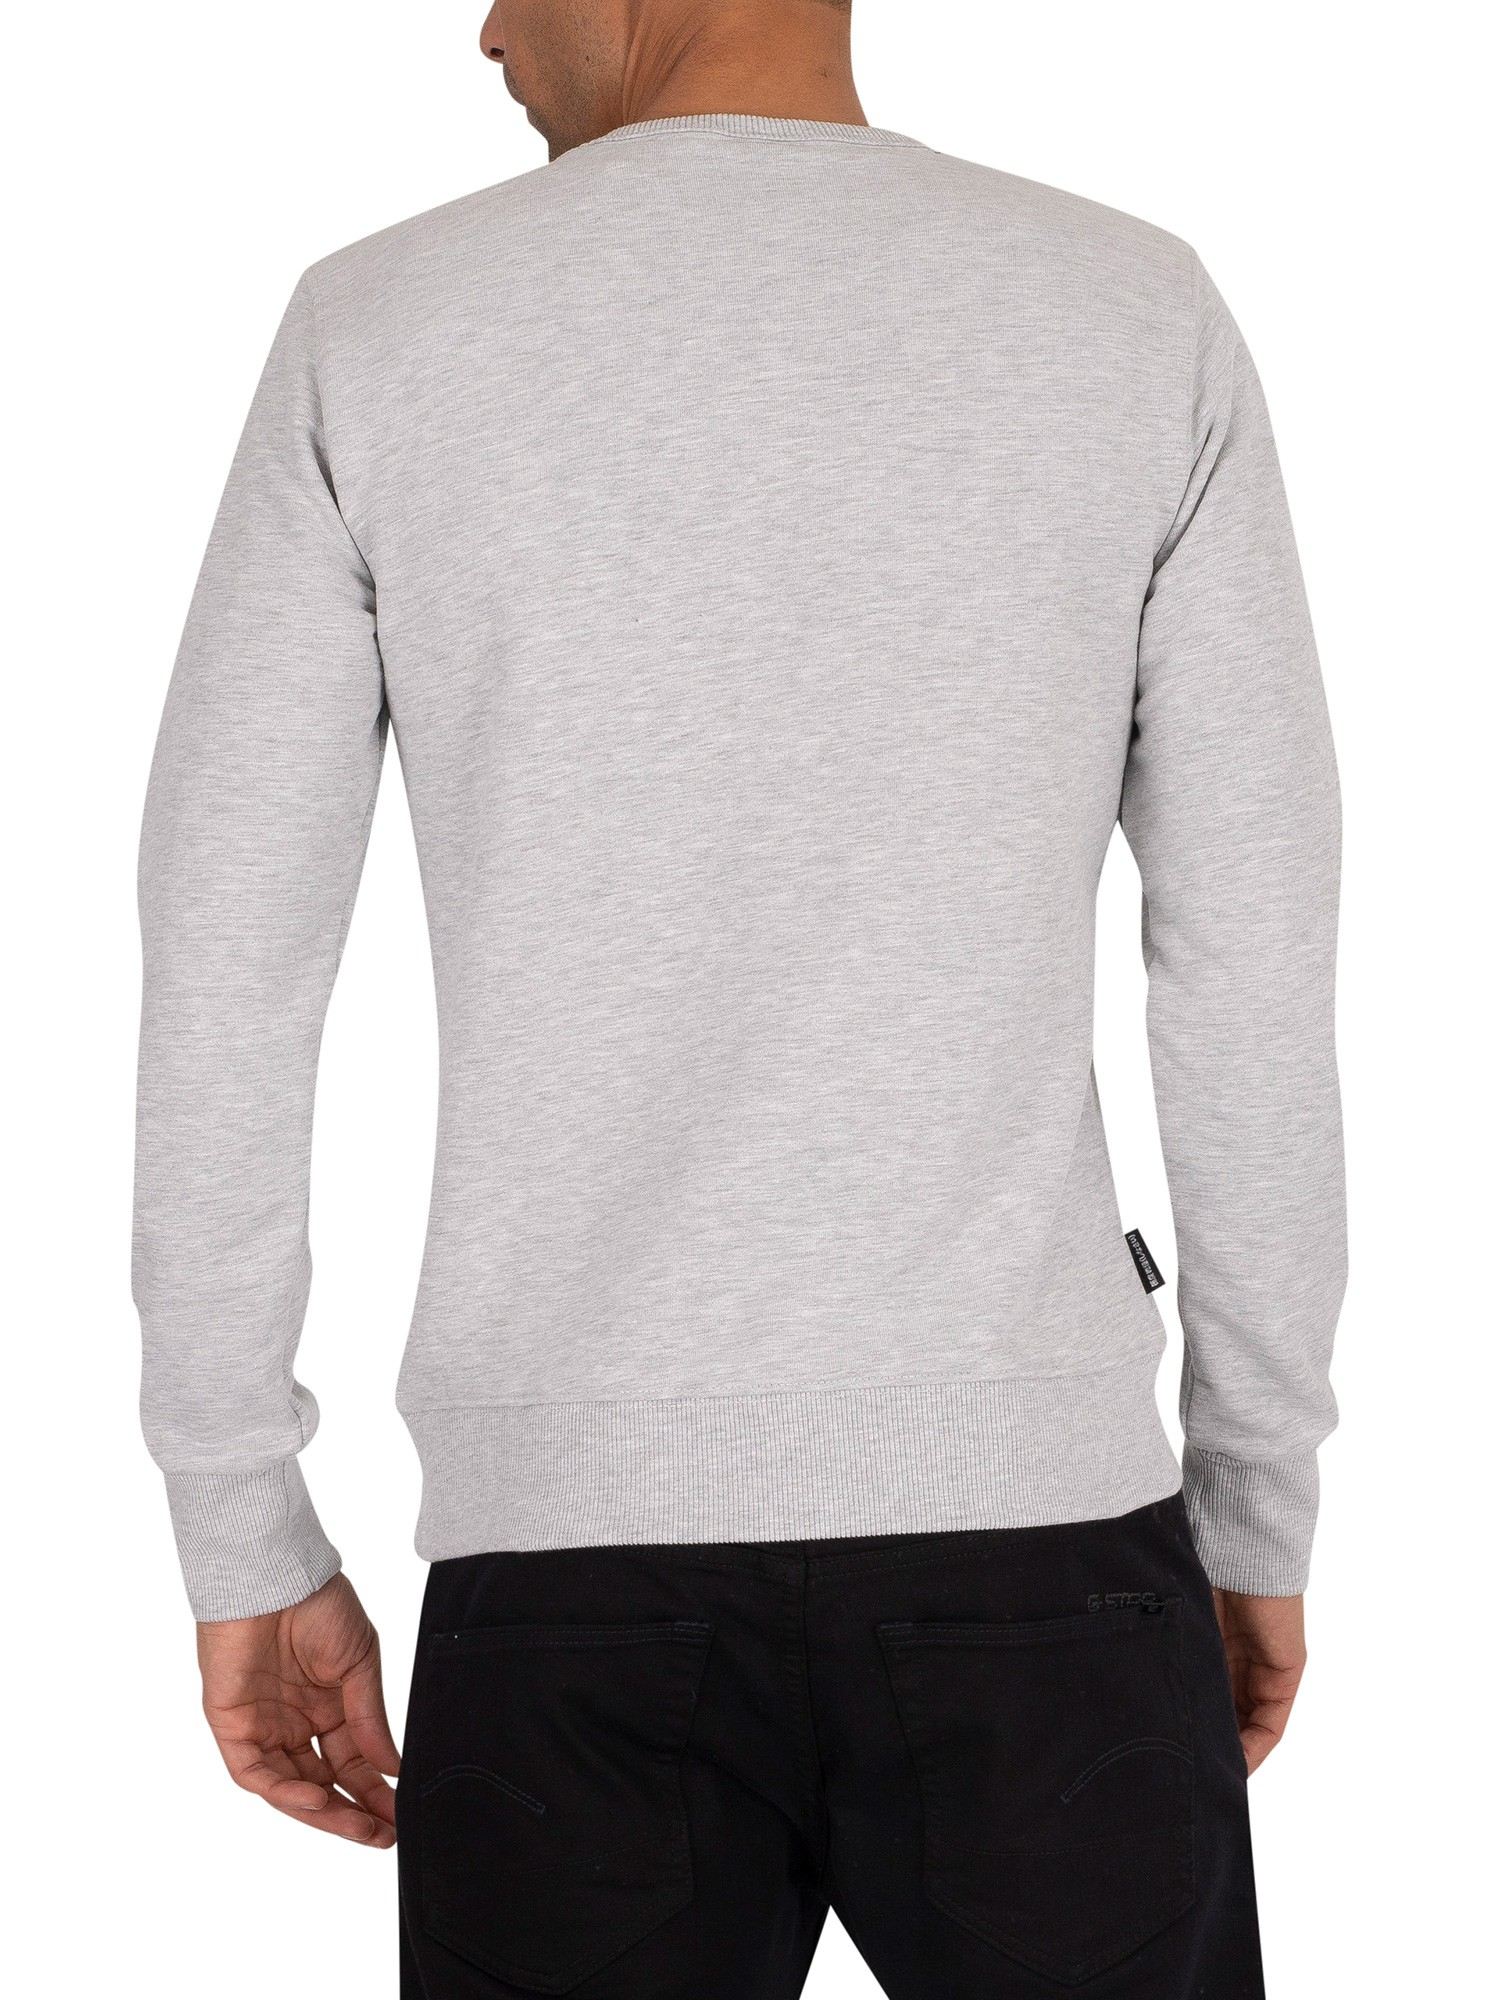 Superdry Core Logo Faux Suede Sweatshirt - Collective Light Marl